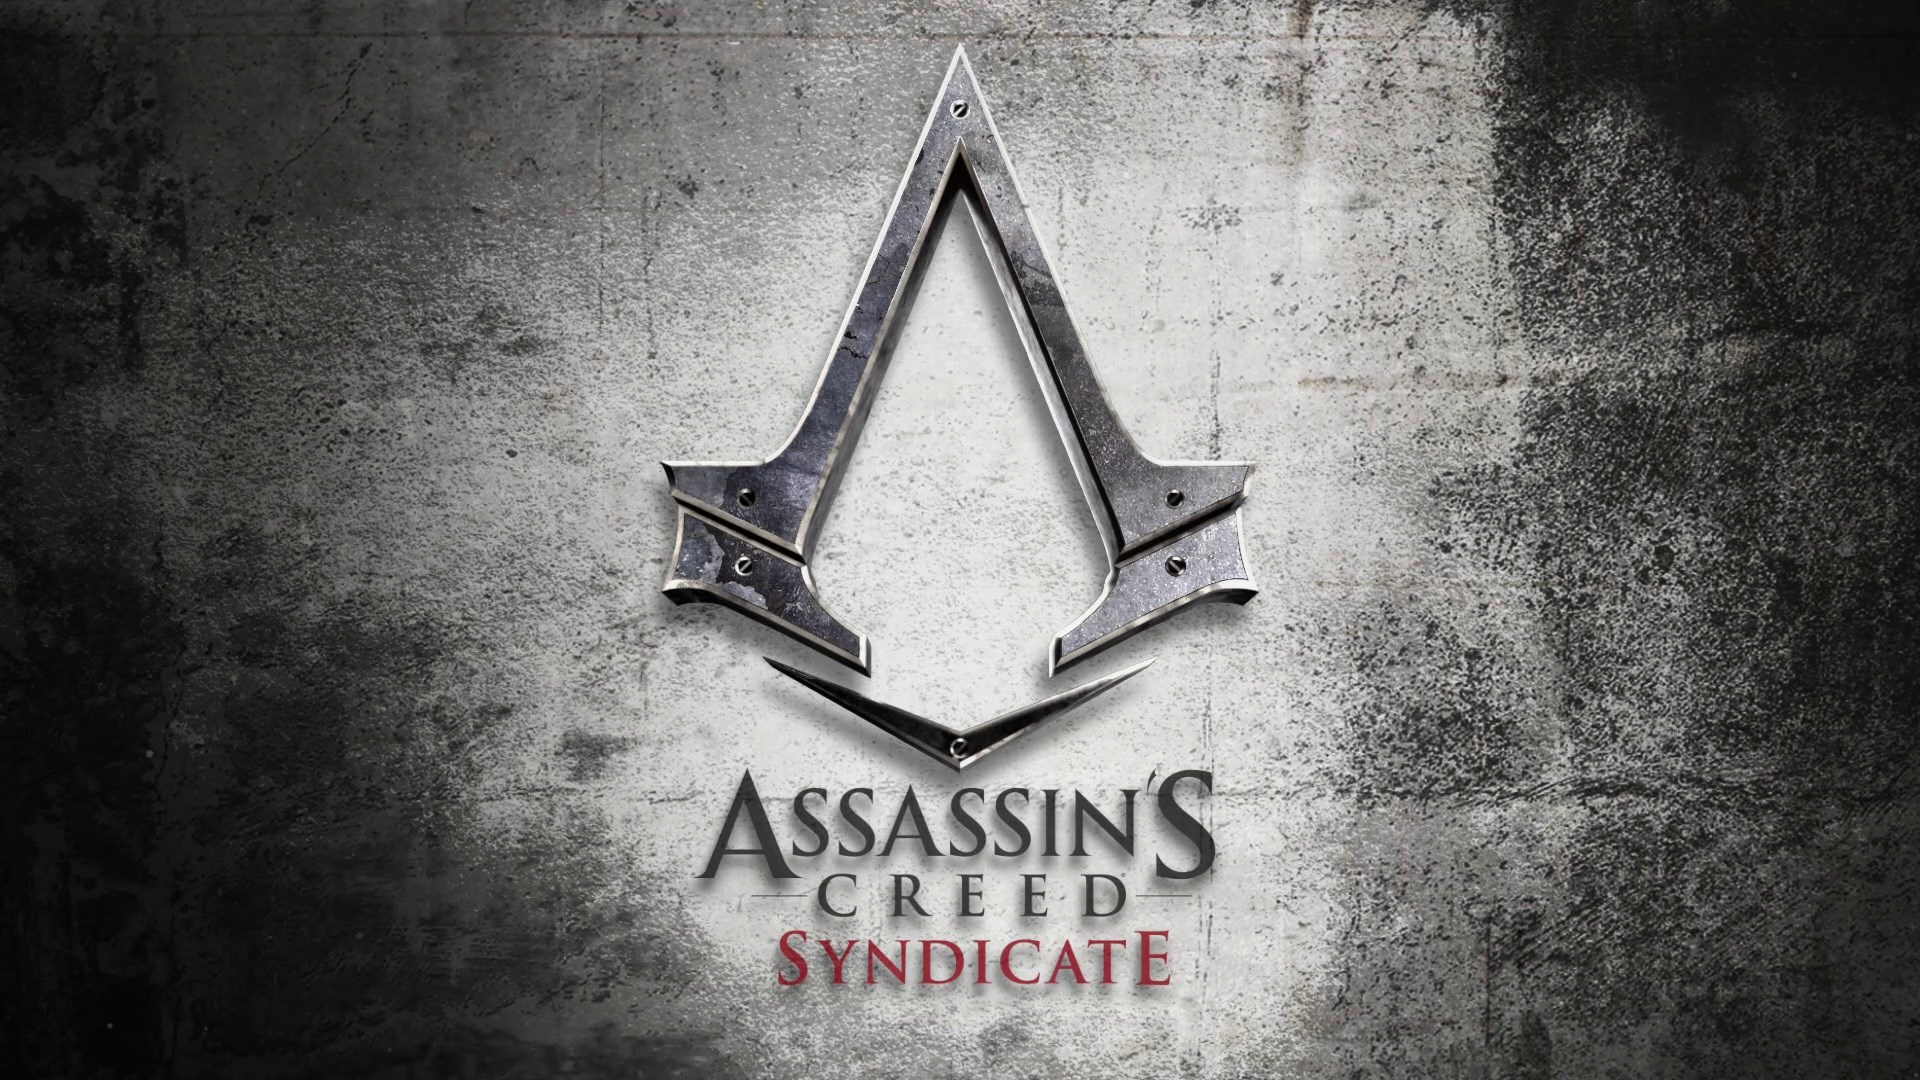 Assassins Creed Syndicate Image Full Hd Photos Fullerton